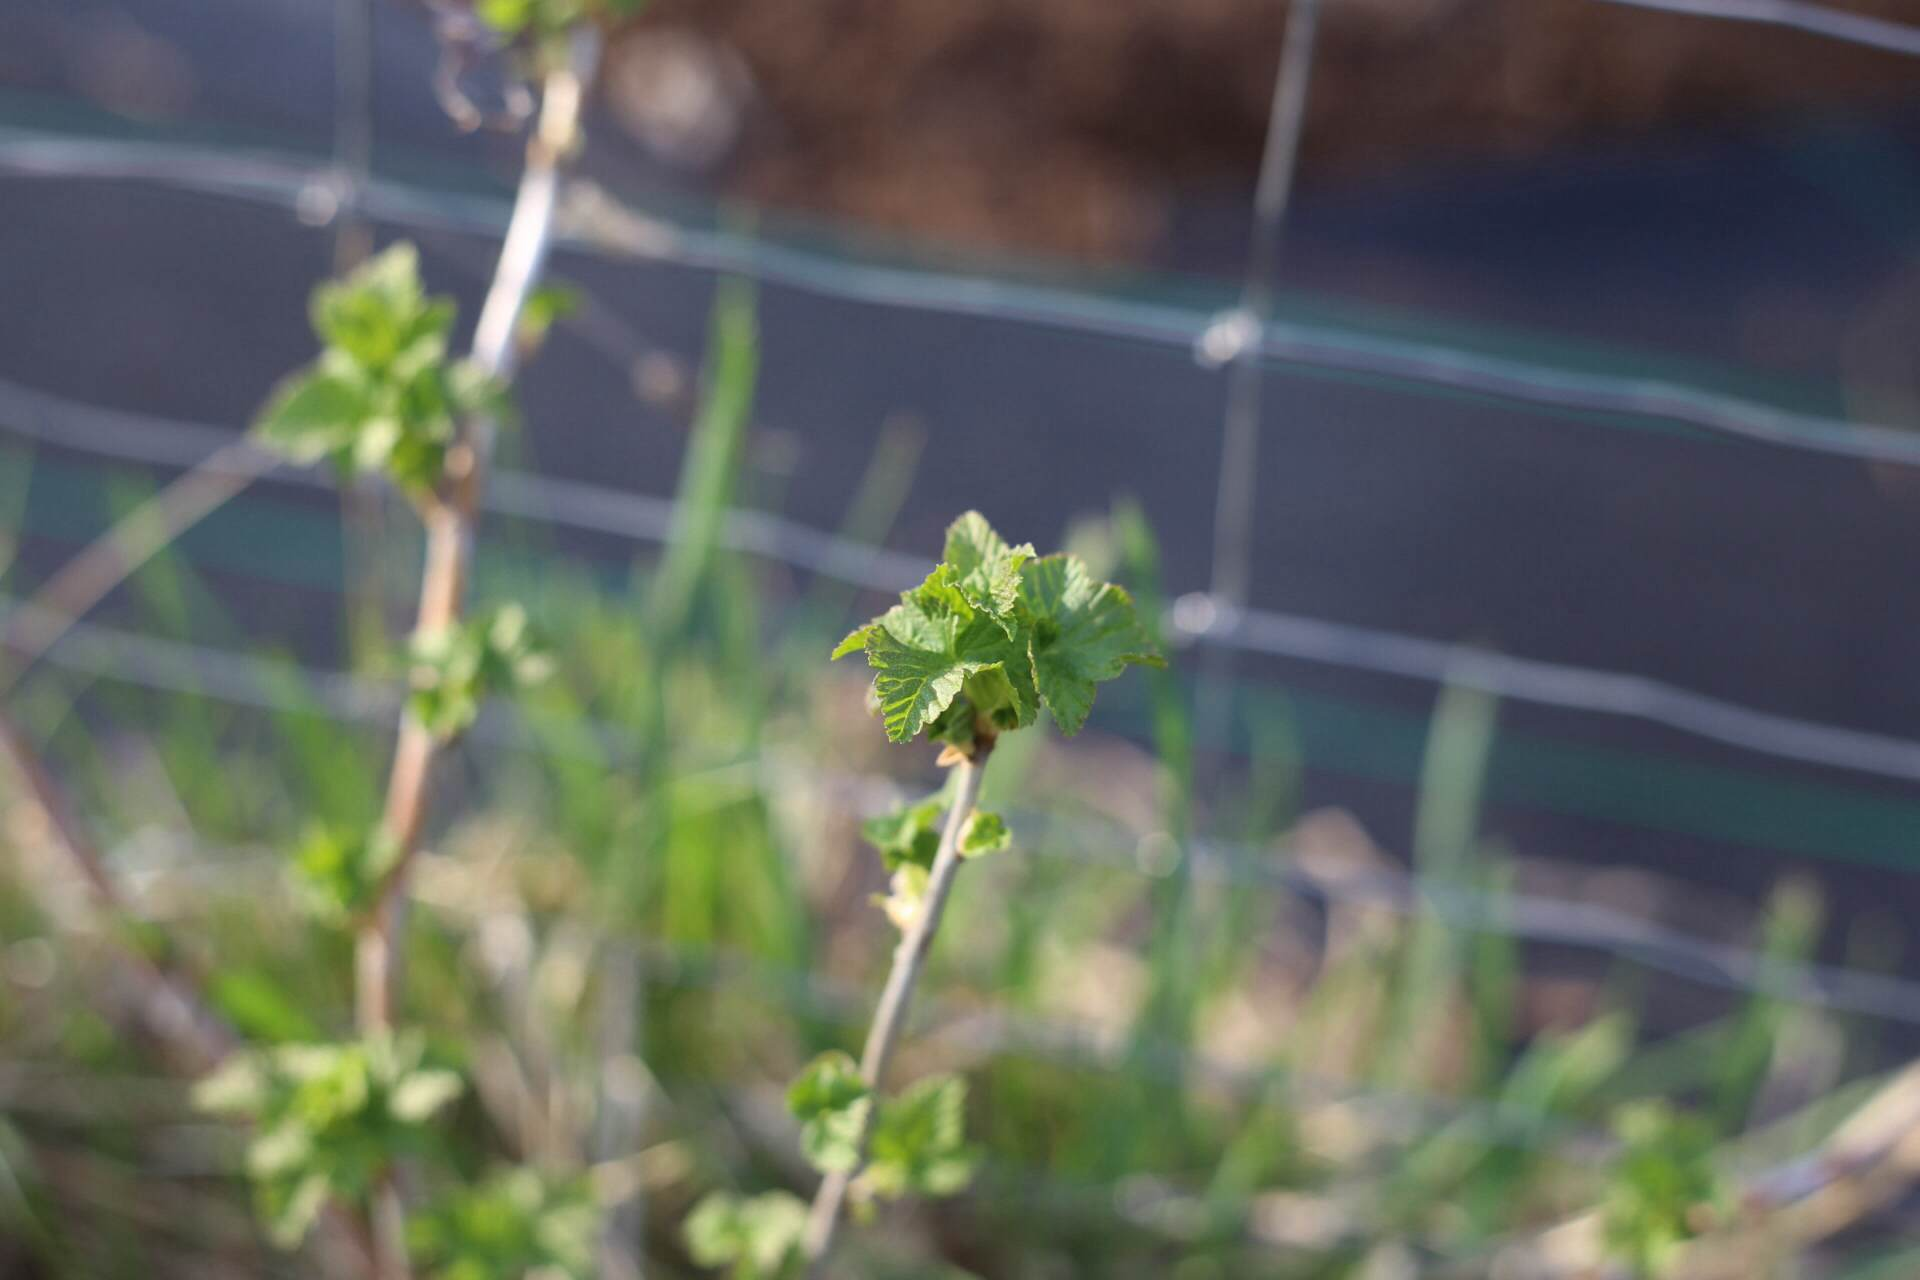 Currants leafing out